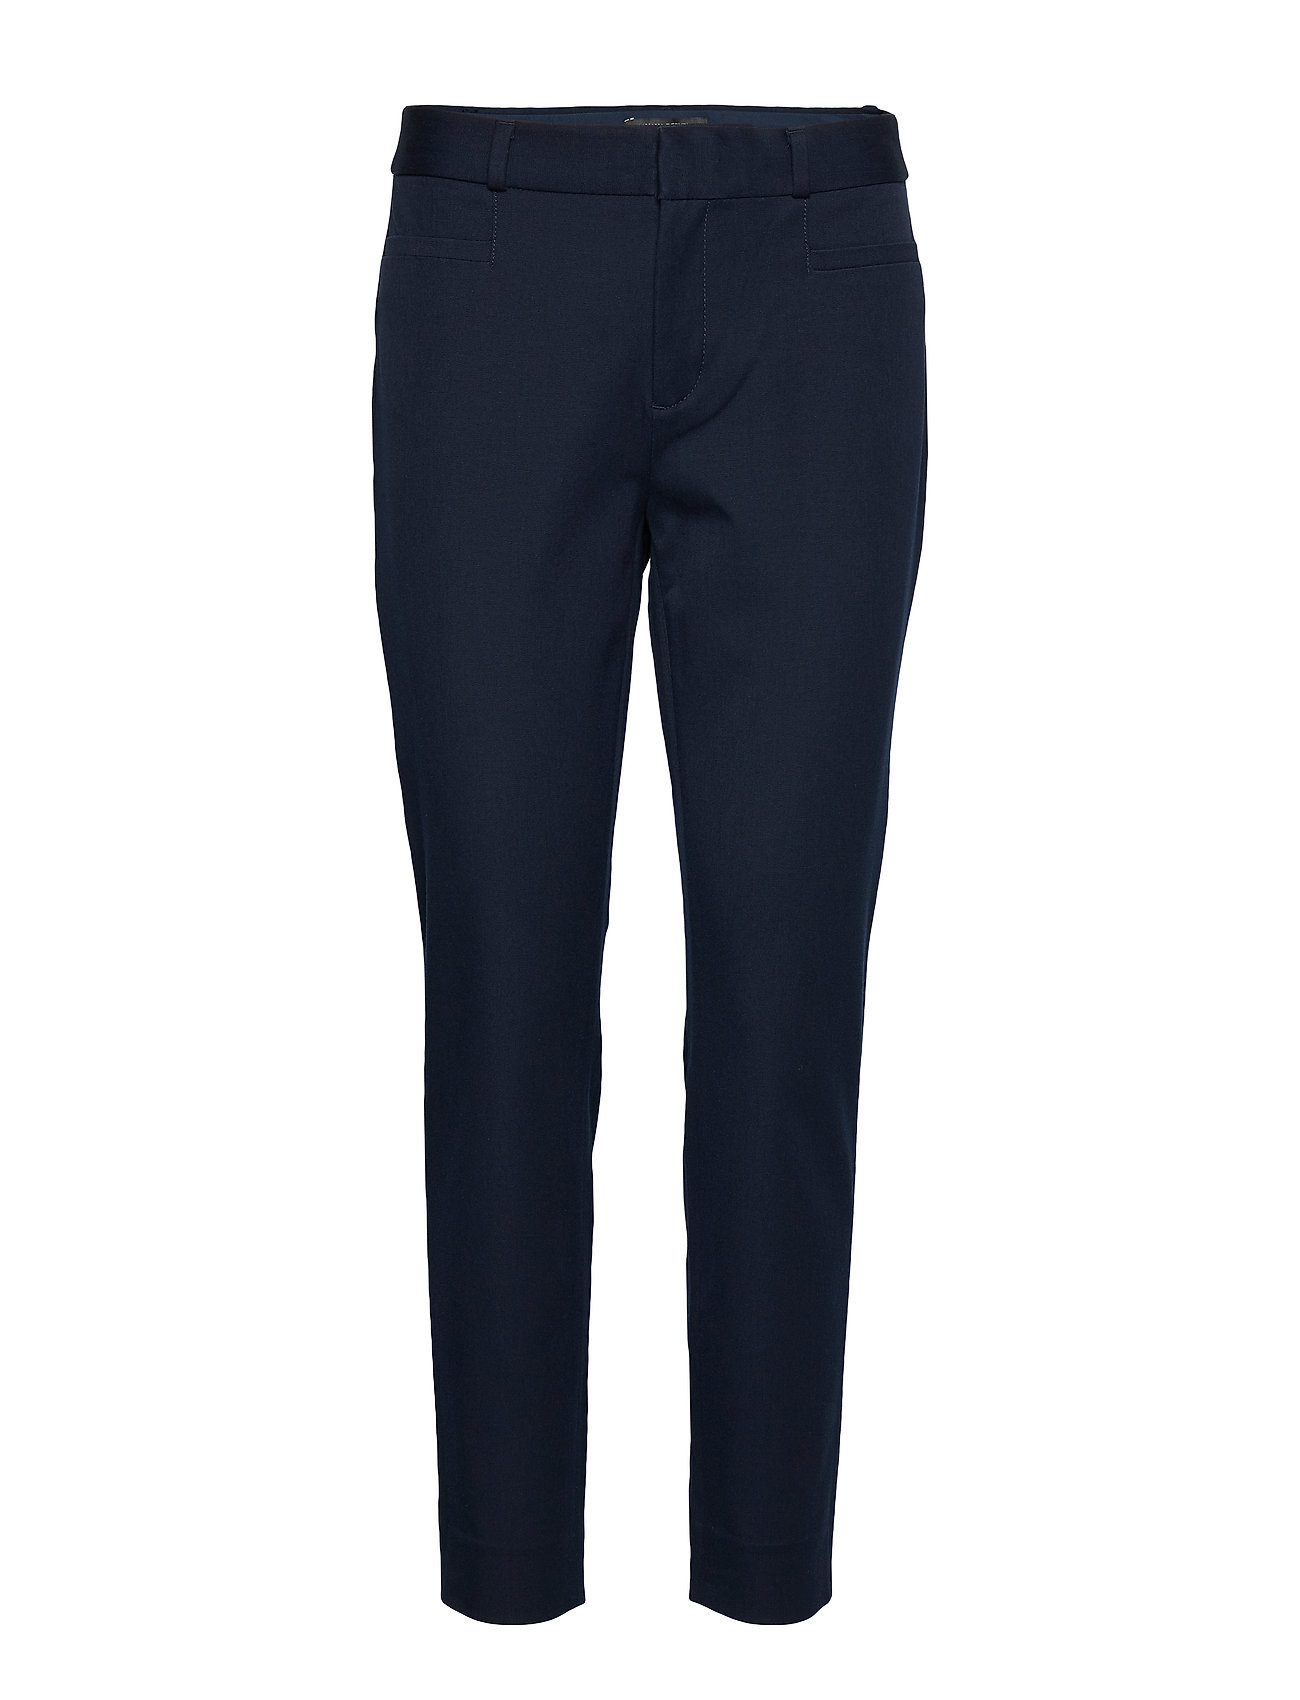 Banana Republic Modern Sloan Skinny-Fit Washable Pant - PREPPY NAVY